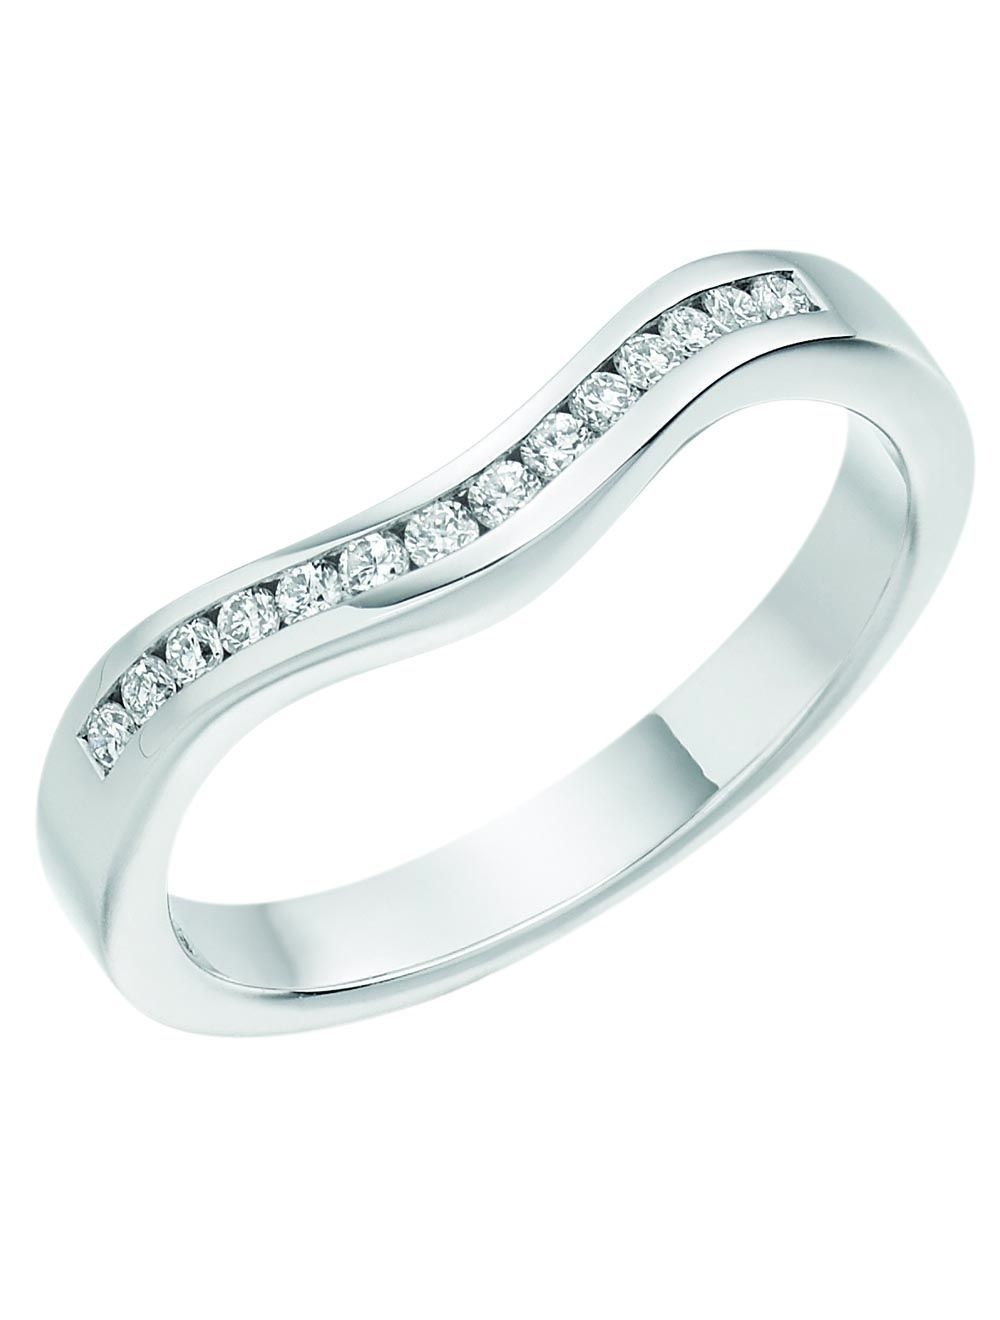 Womens 18ct White Gold Wedding Ring In 2020 White Gold Wedding Rings Gold Diamond Wedding Rings Diamond Wedding Bands